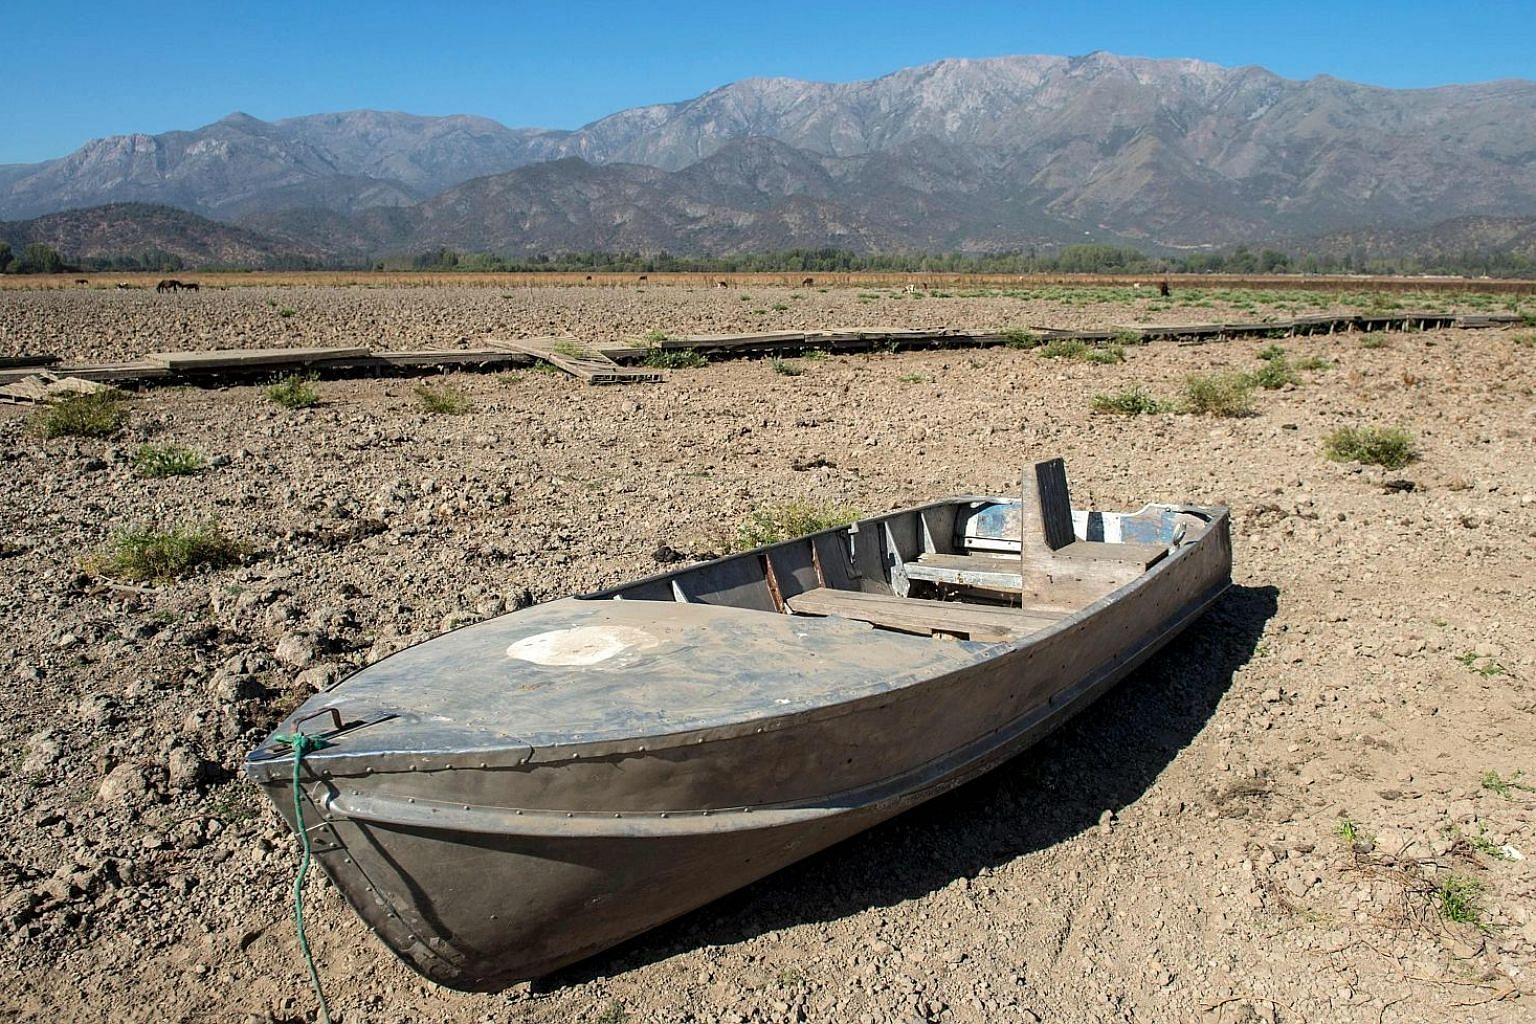 Above: An abandoned boat at the dried-up Lake Aculeo in Paine, about 70km south-west of Santiago, Chile, earlier this month. The lake, which was for decades a major tourist attraction, has disappeared due to a drought and an over-consumption of water